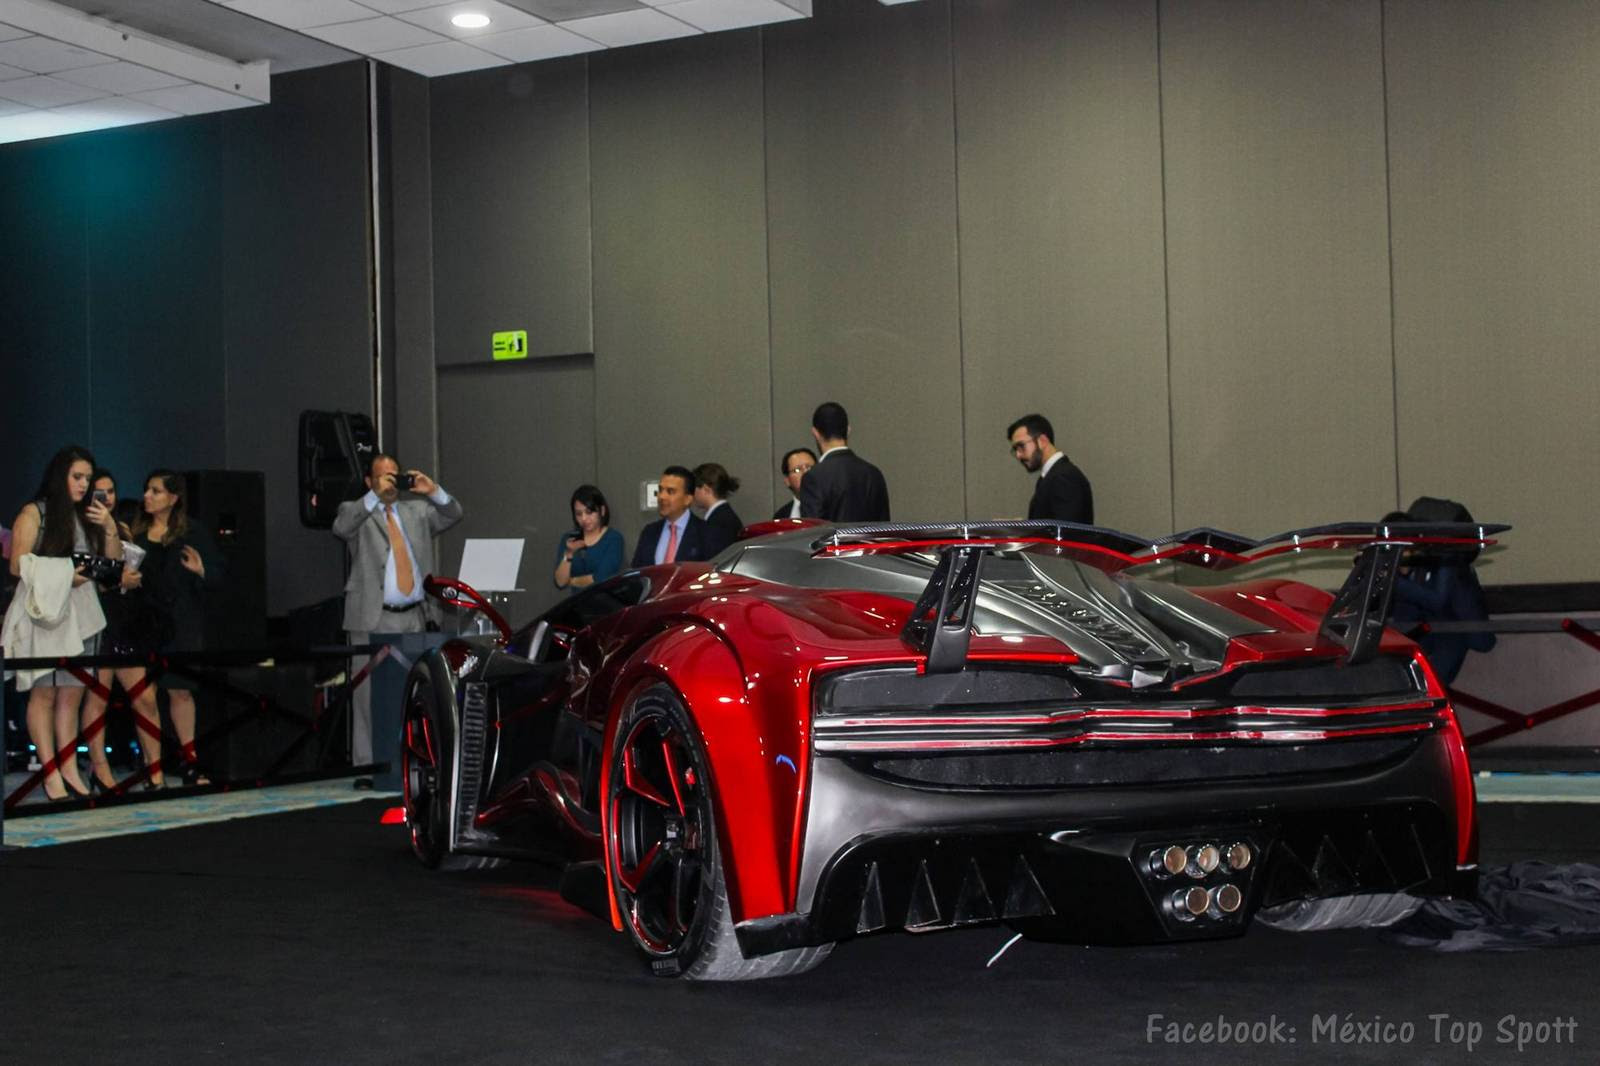 Mexicos First Hypercar The Inferno Exotic Car Isnt Just A Computer Sketch Anymore